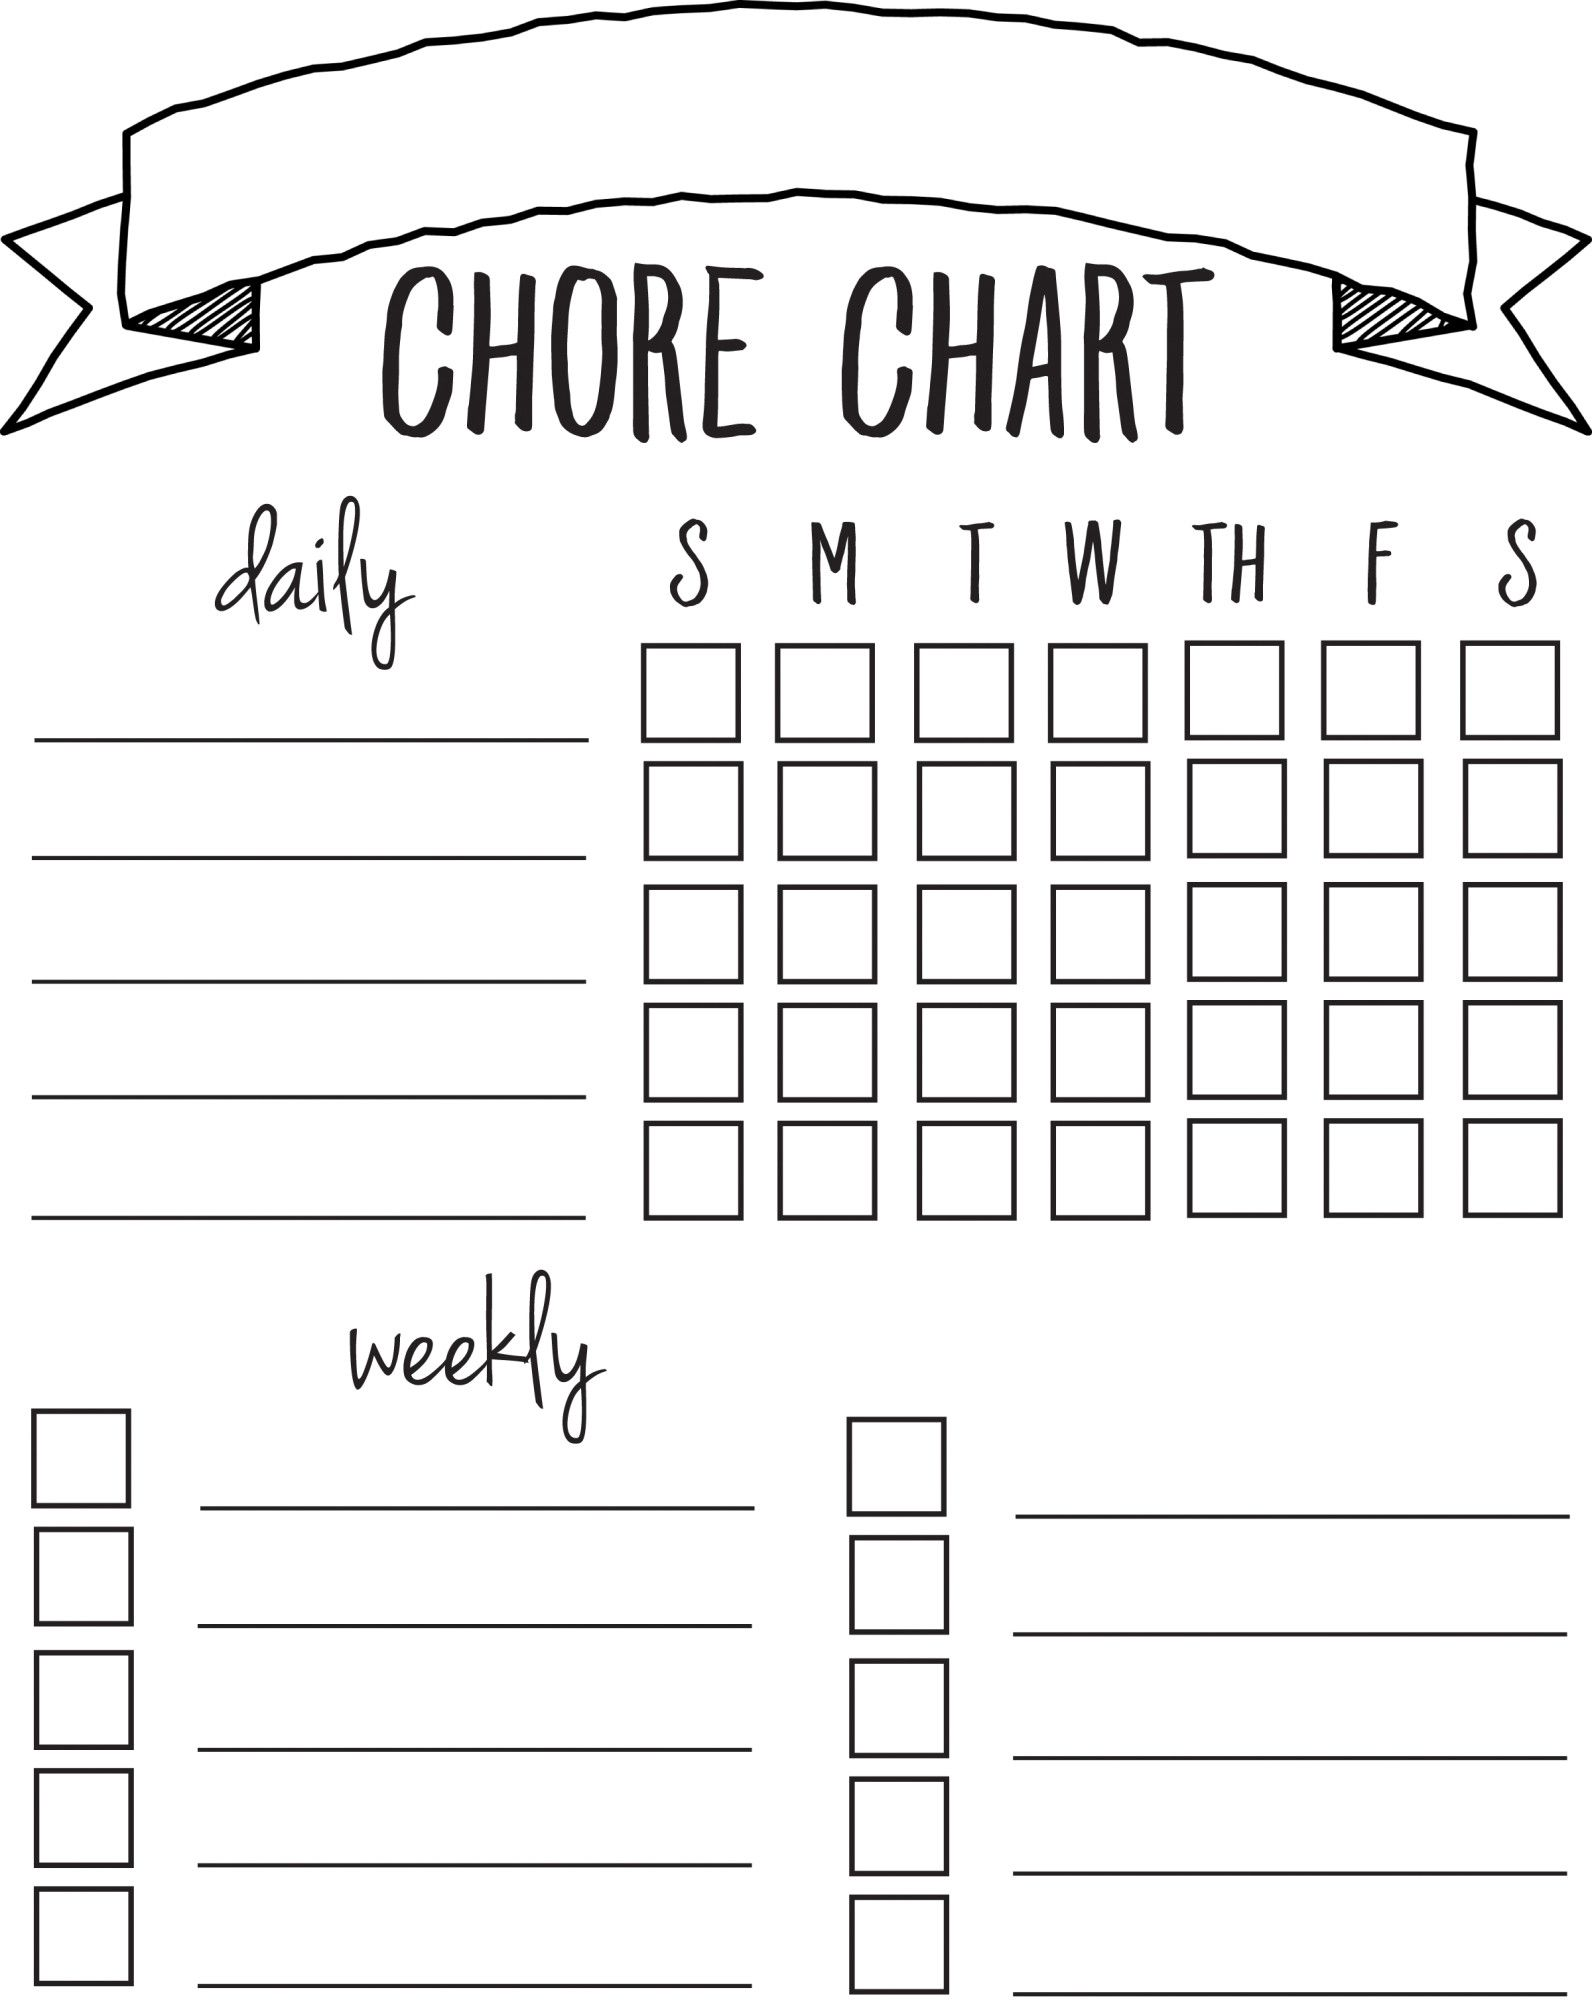 picture relating to Chore Chart Printable Free named Do-it-yourself Printable Chore Chart free of charge printables NOV/FEB Chore